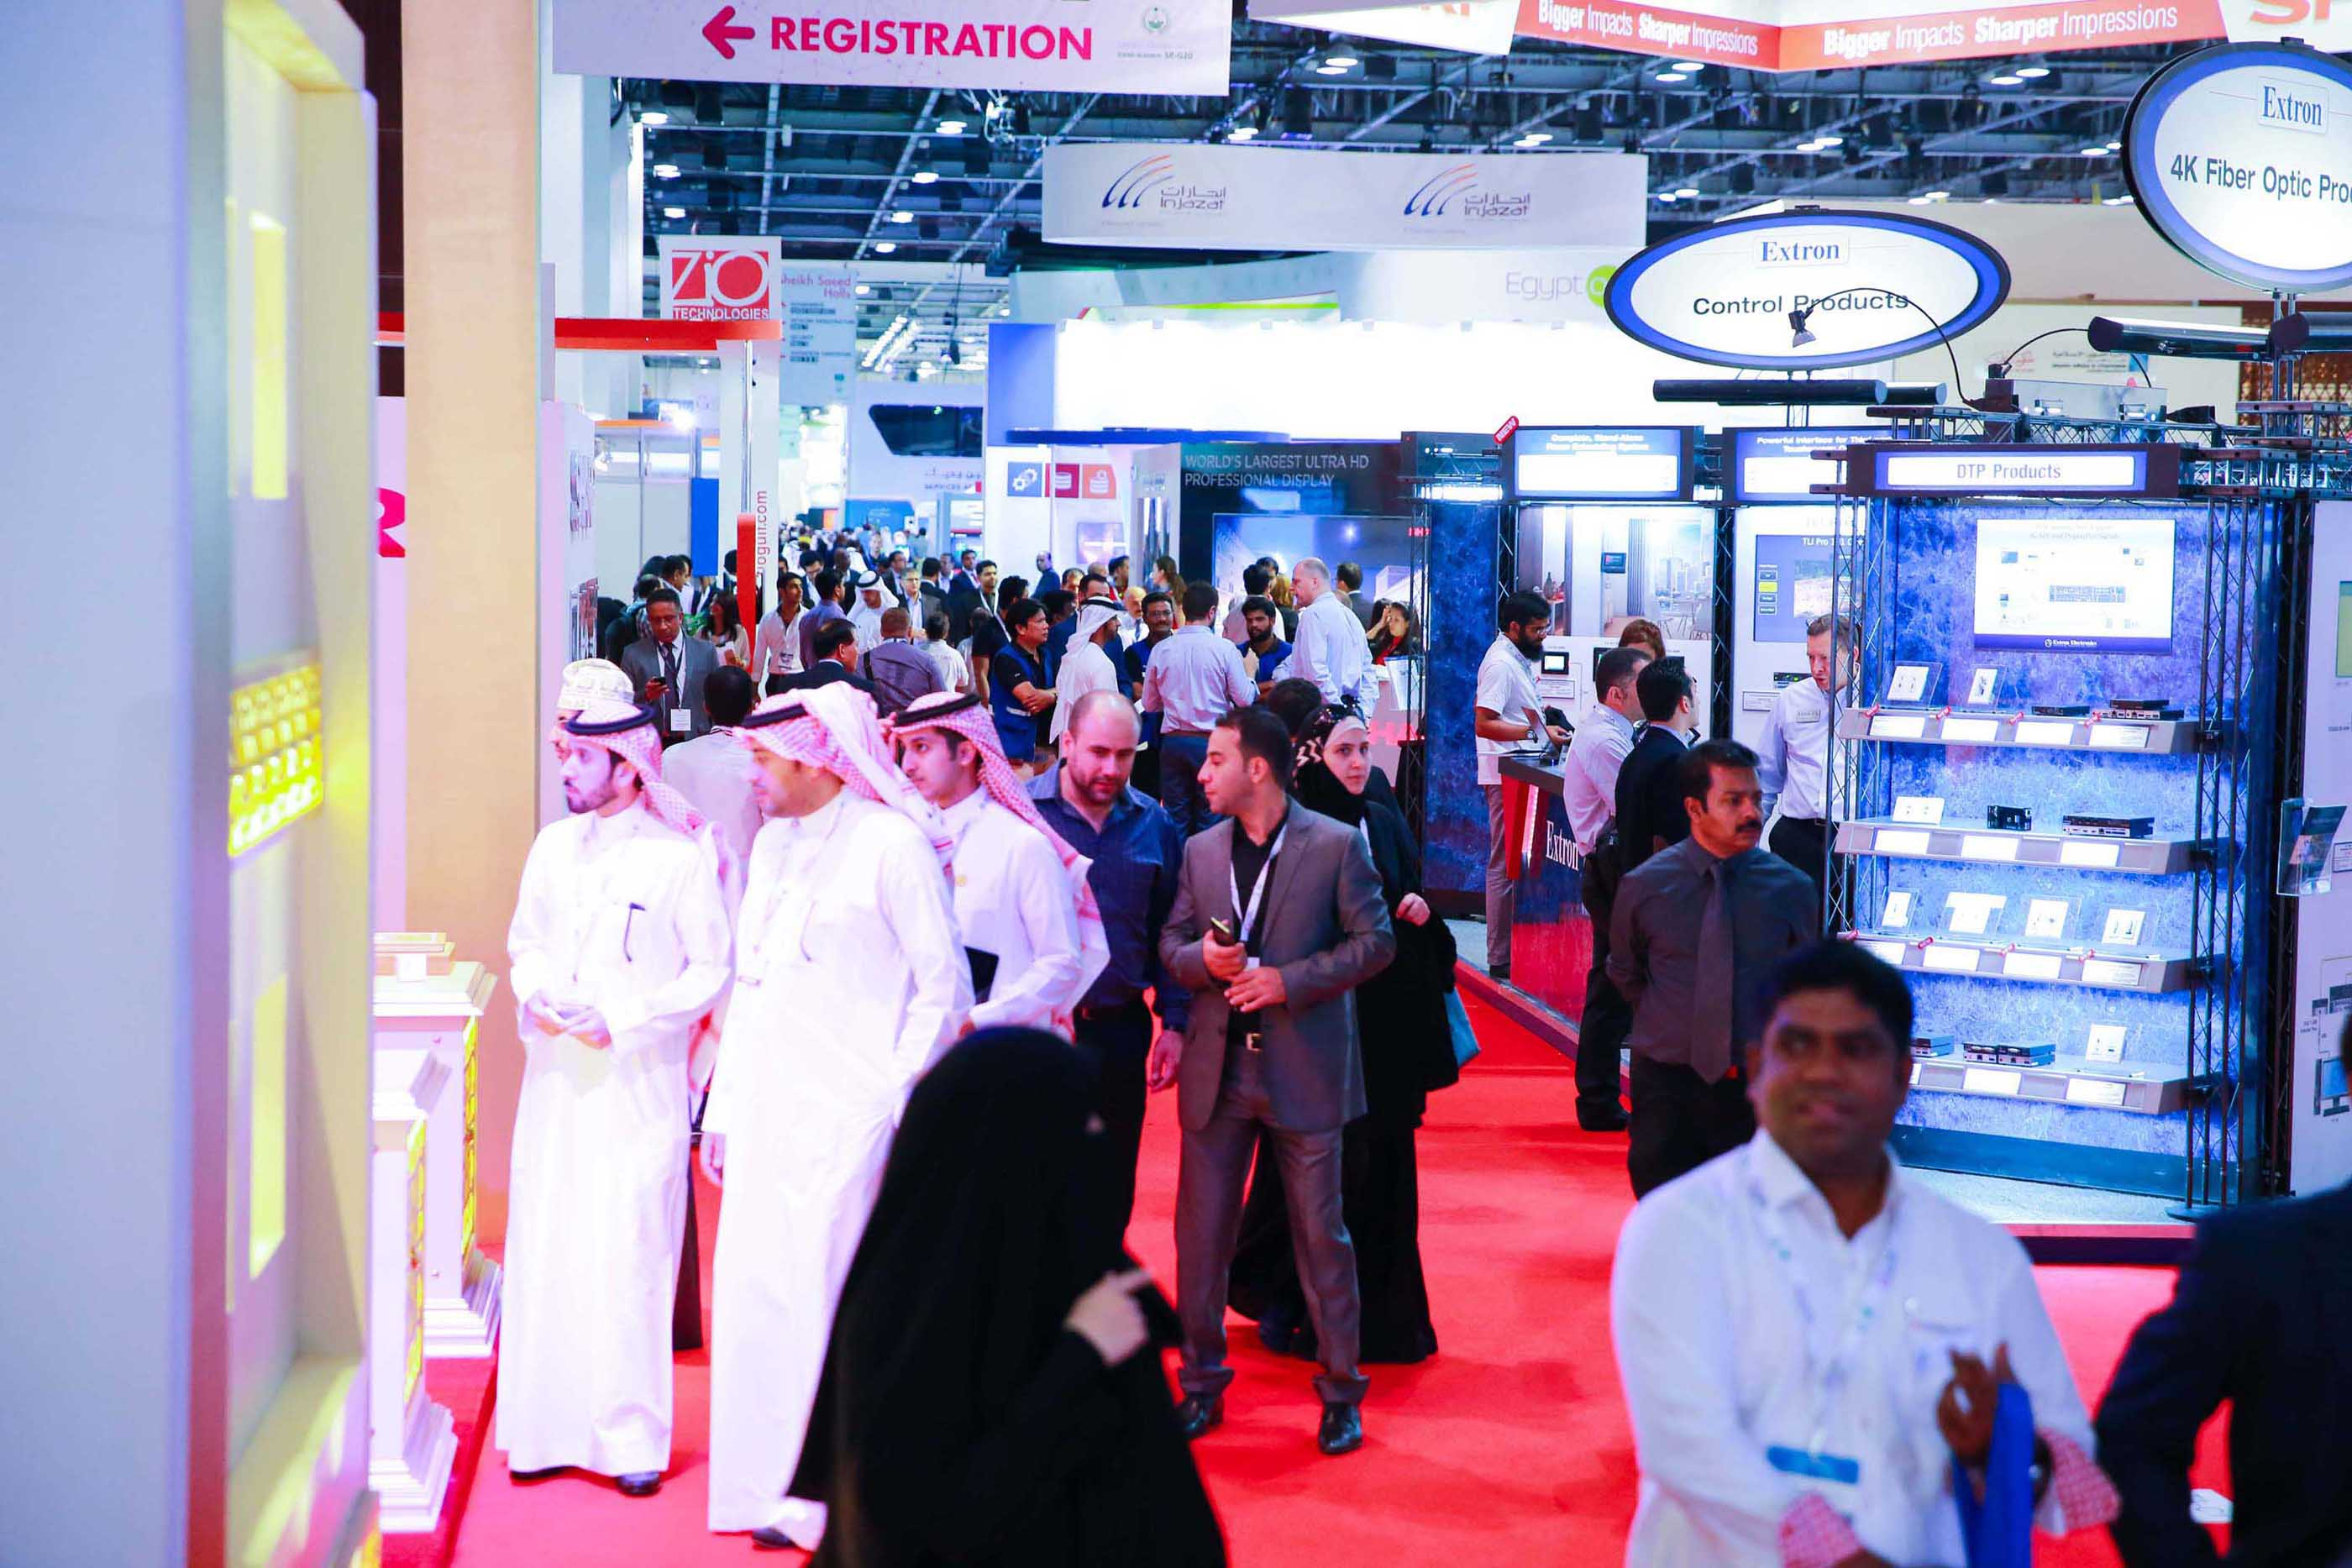 Retailers in Gulf States looking to AV tech